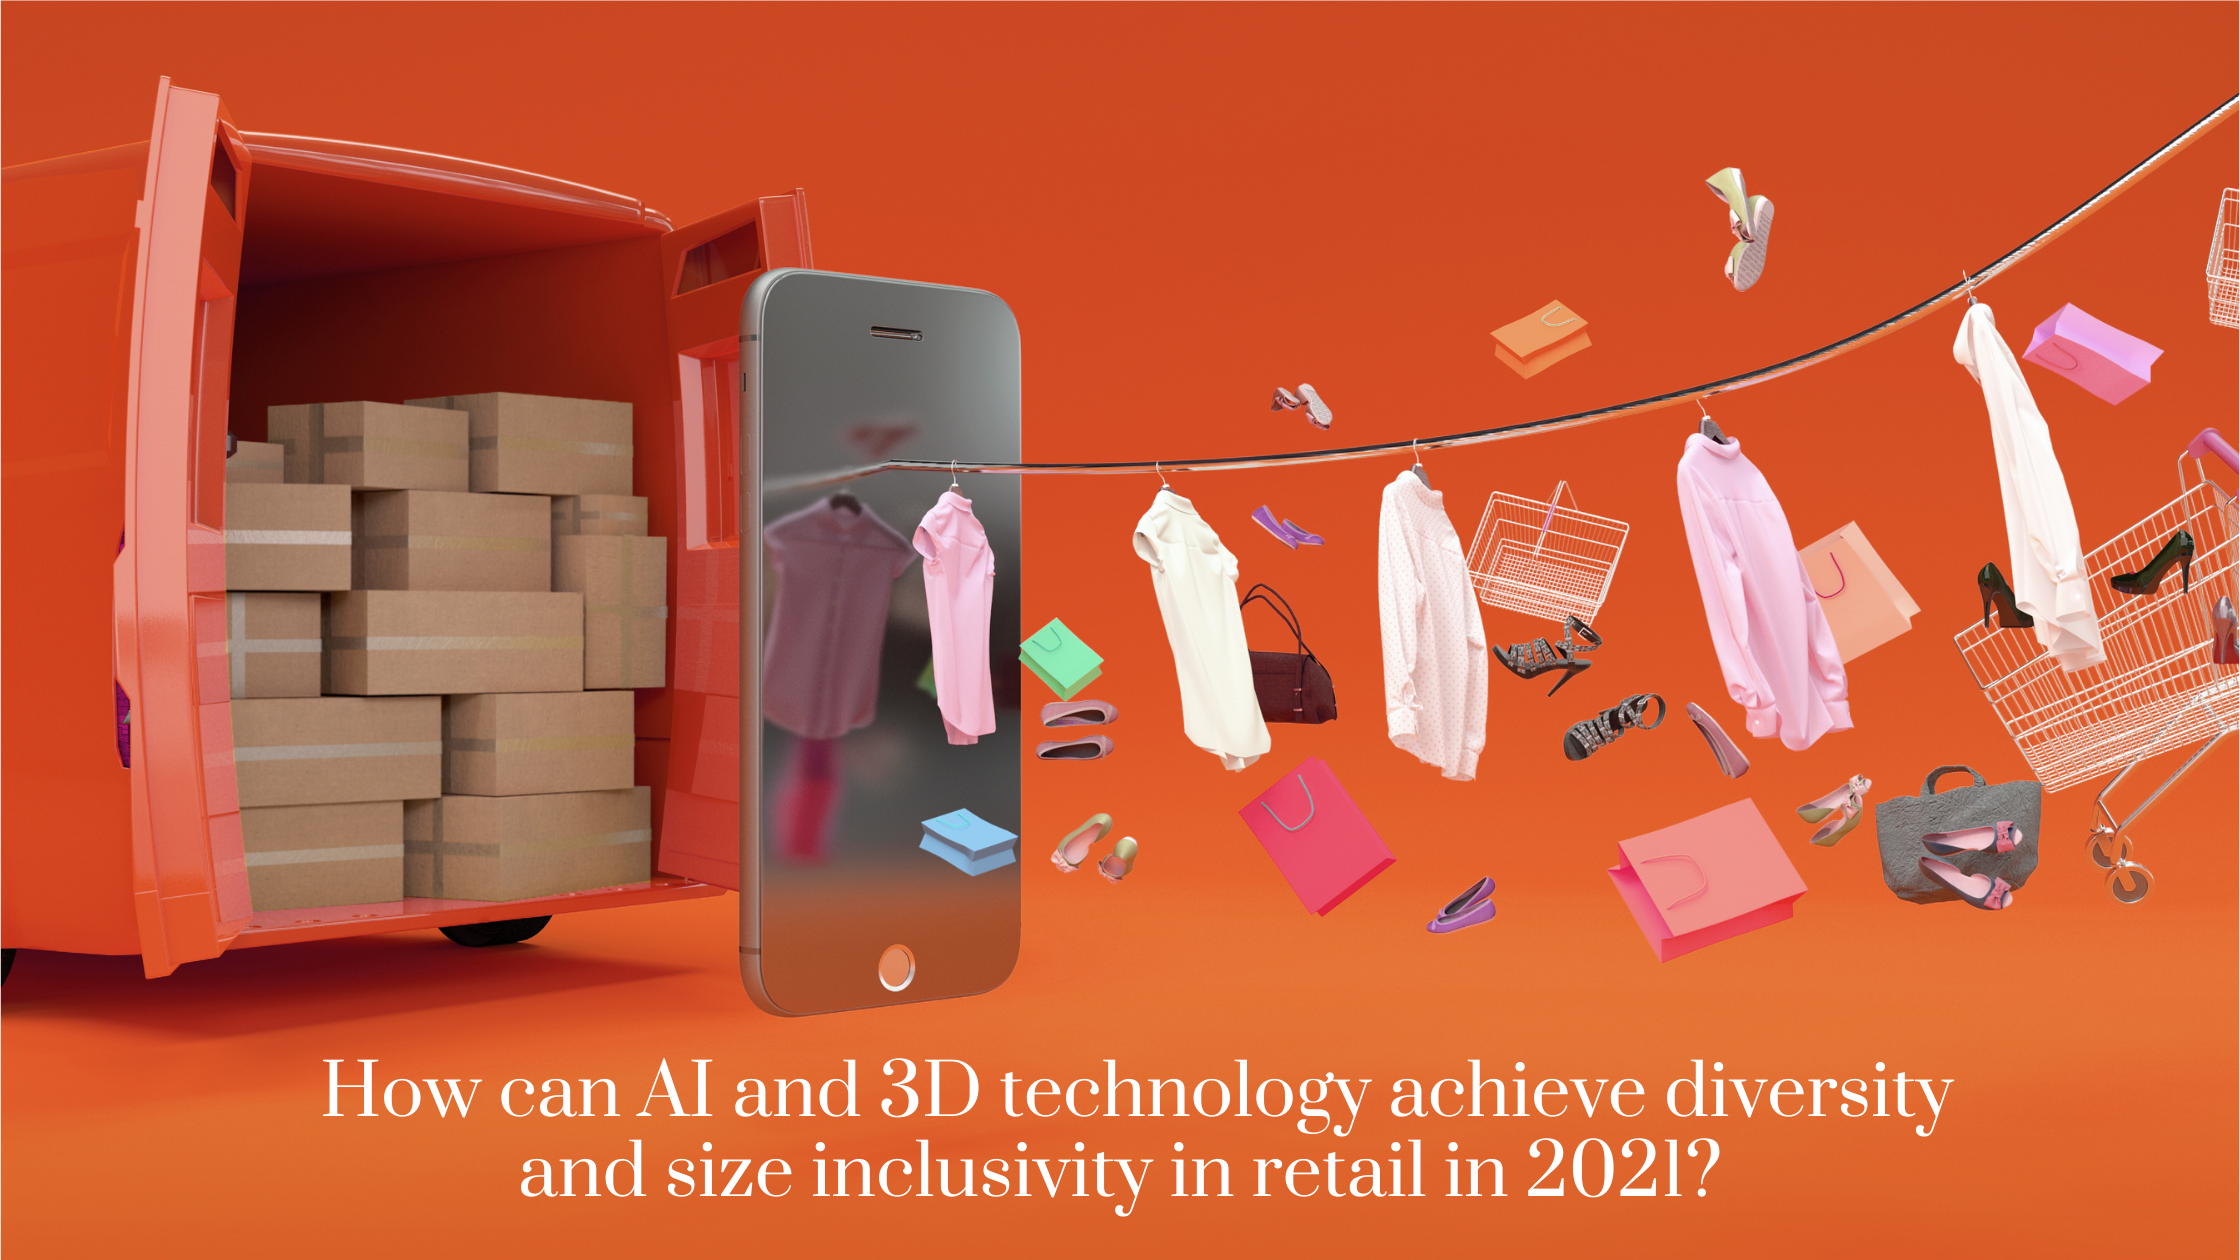 How can AI and 3D technology achieve diversity and size inclusivity in retail in 2021?